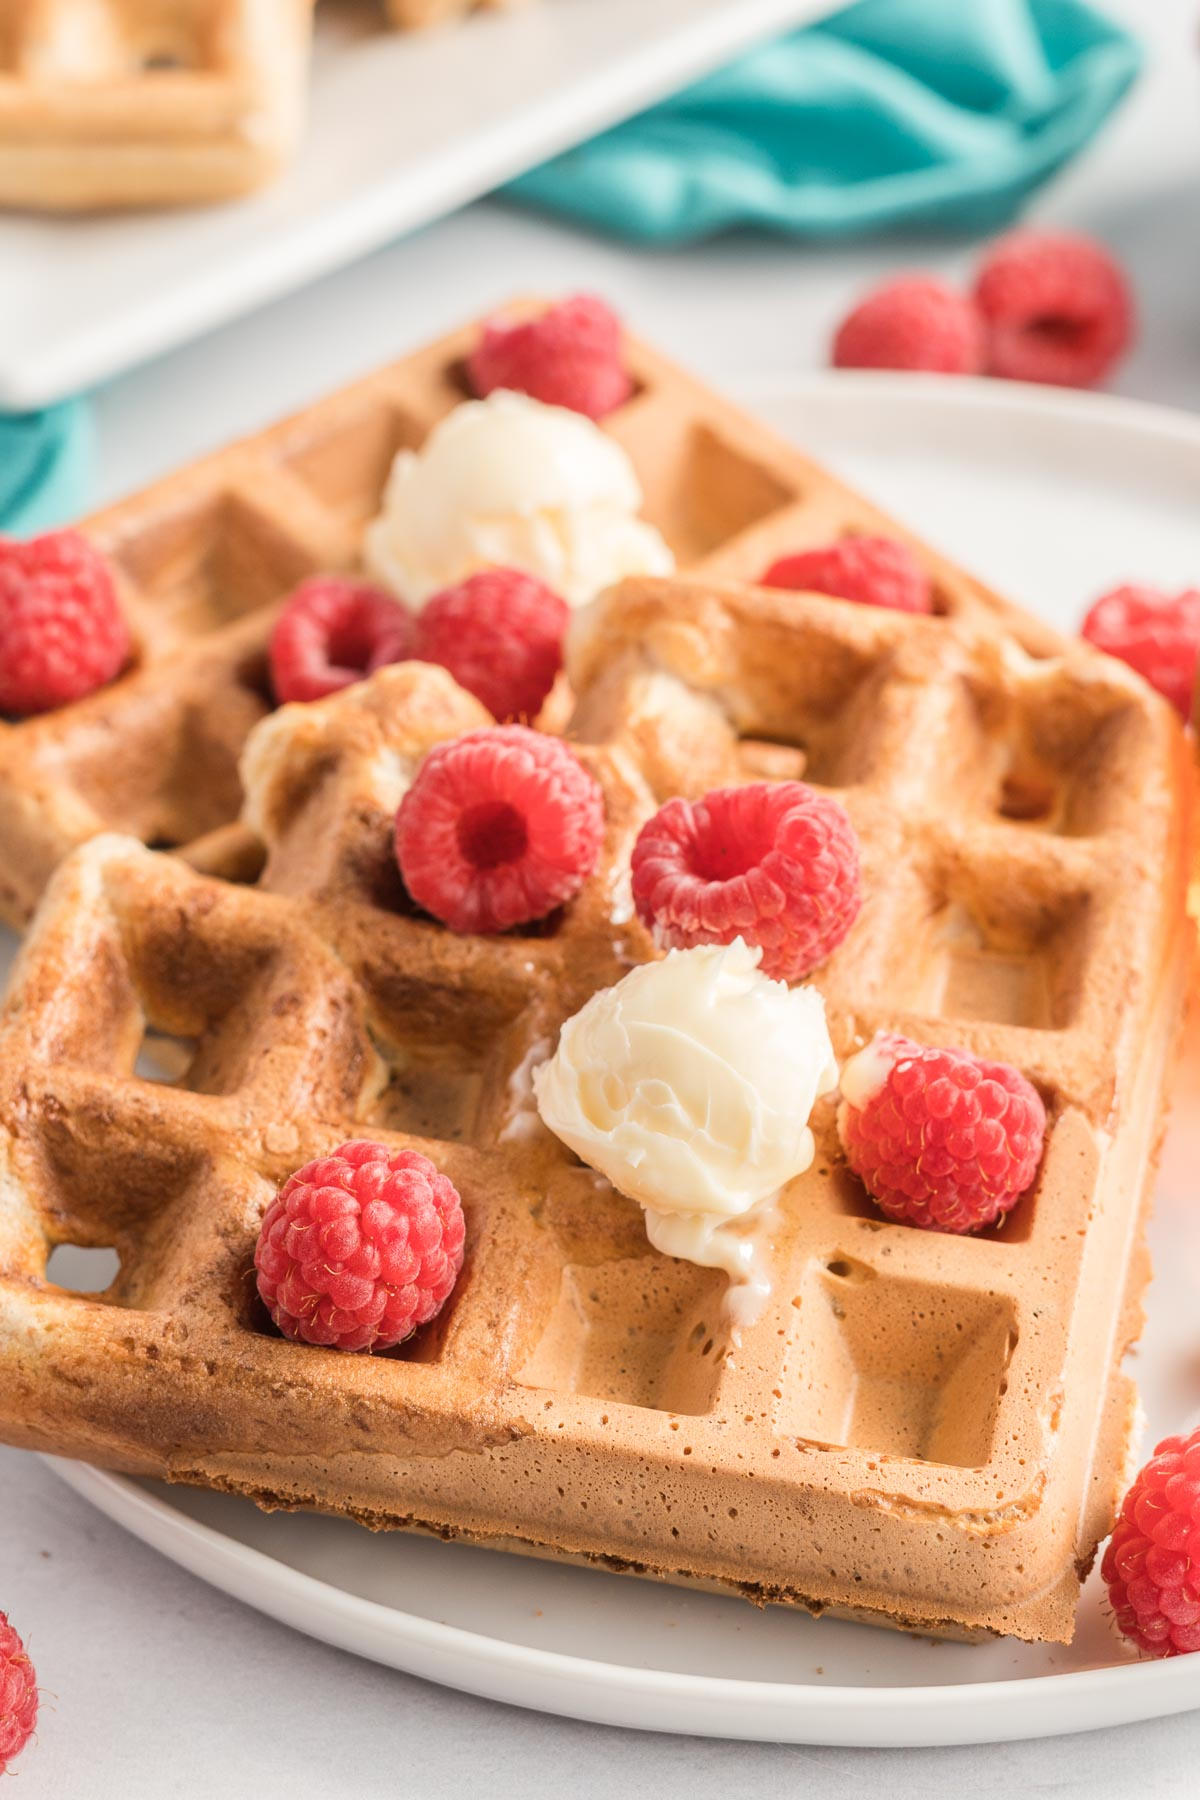 Waffles with butter and raspberries.